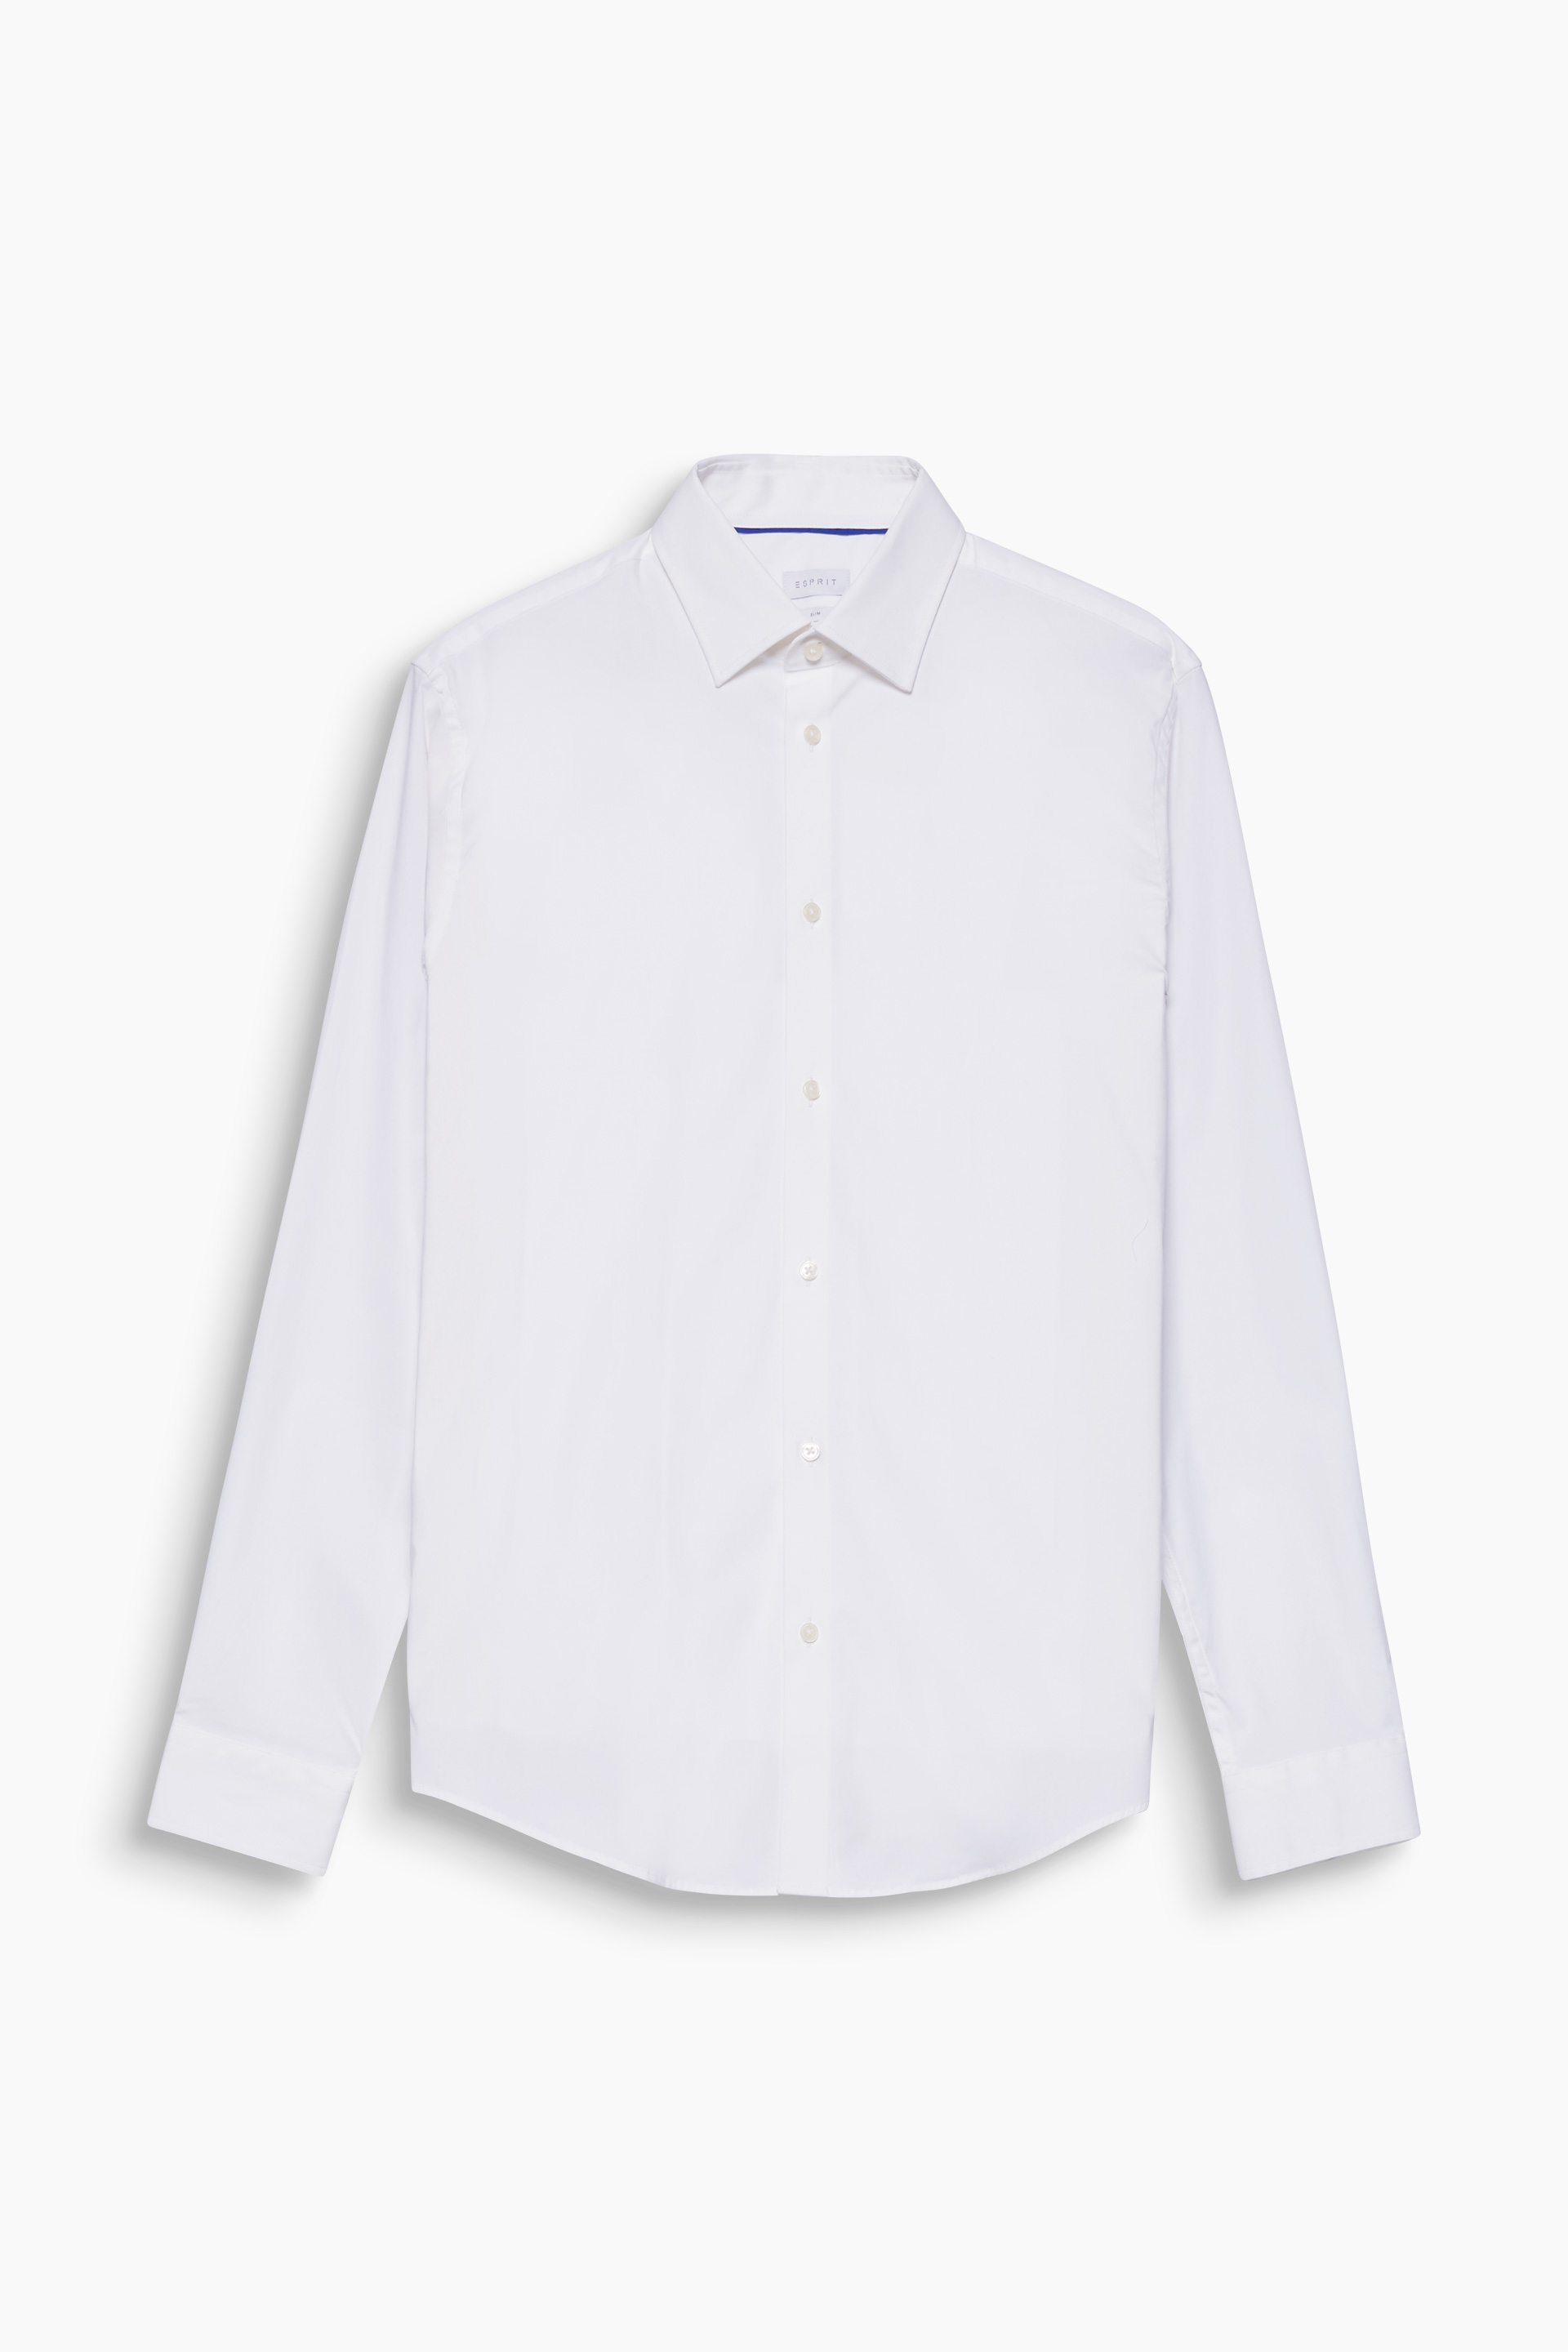 Esprit White - 100 Slim Fit Stretch Cotton Shirt